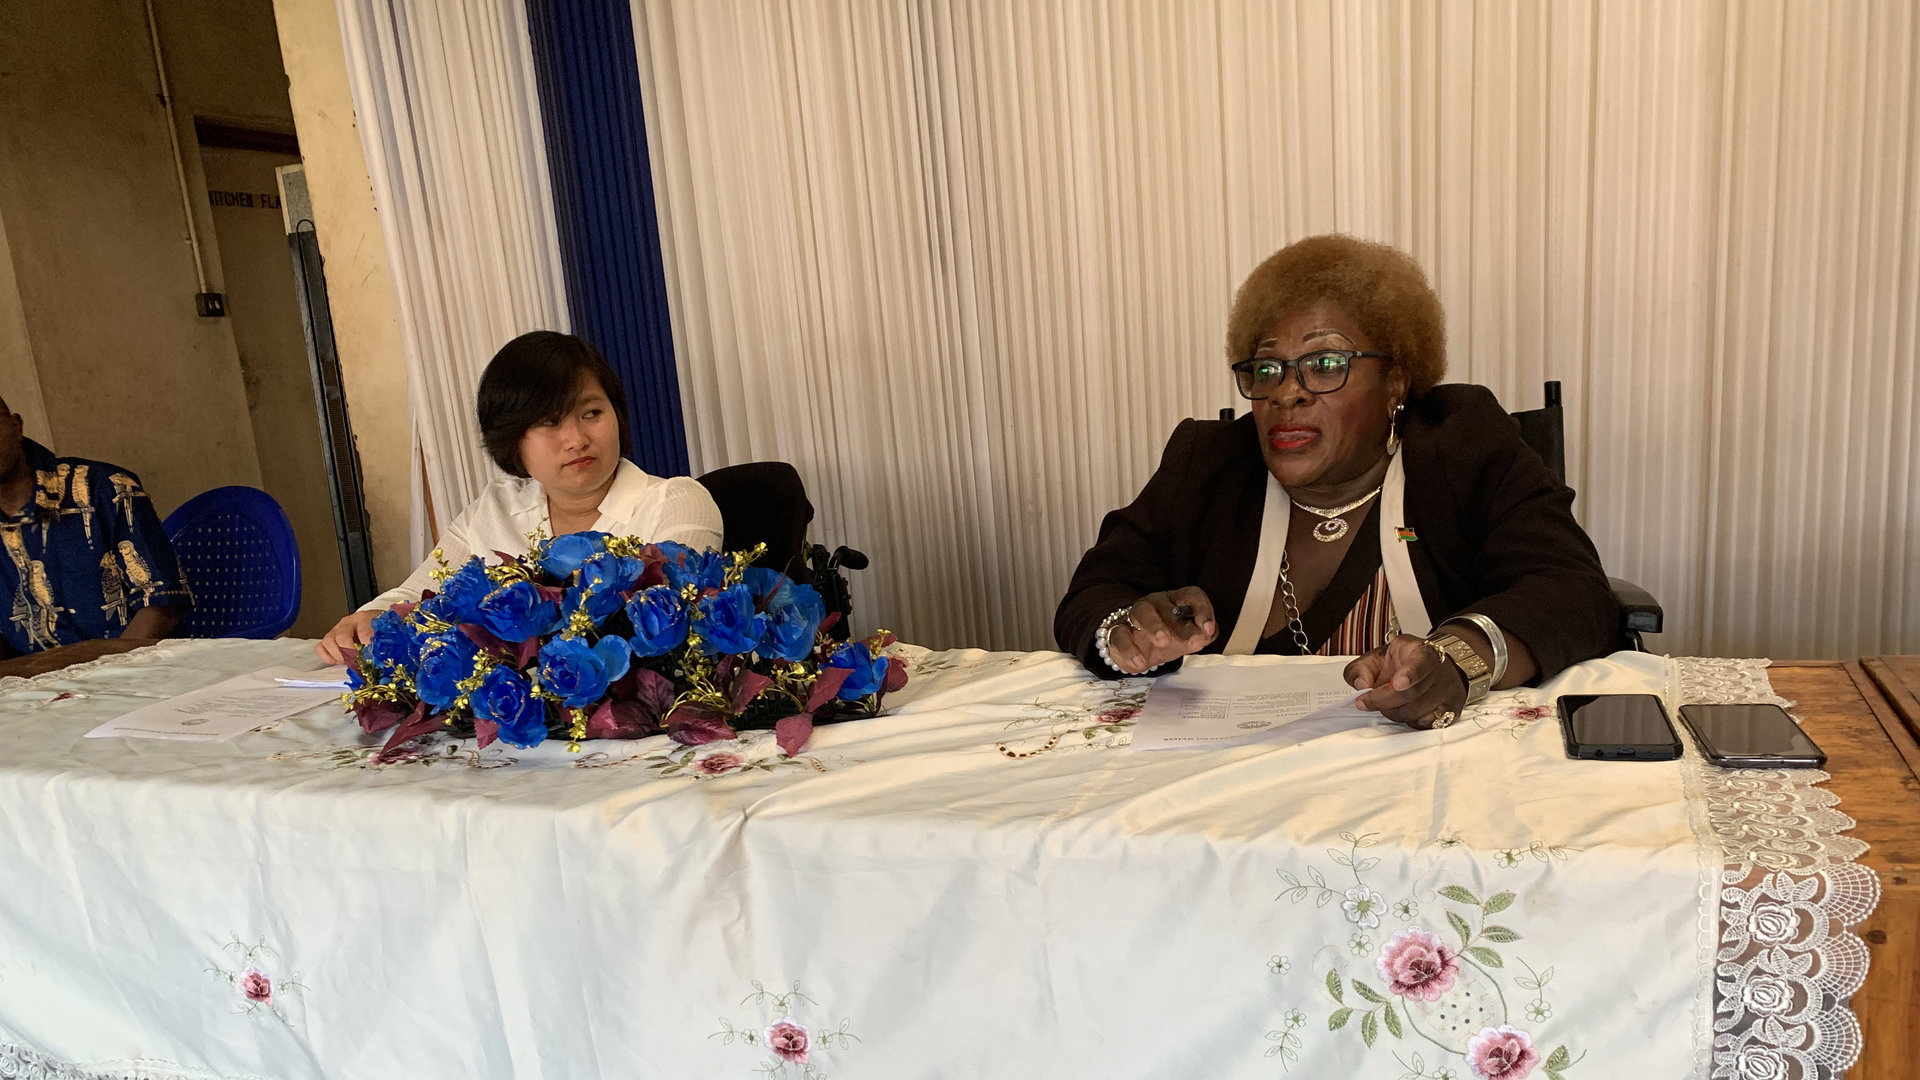 Ming and another woman speak from a table